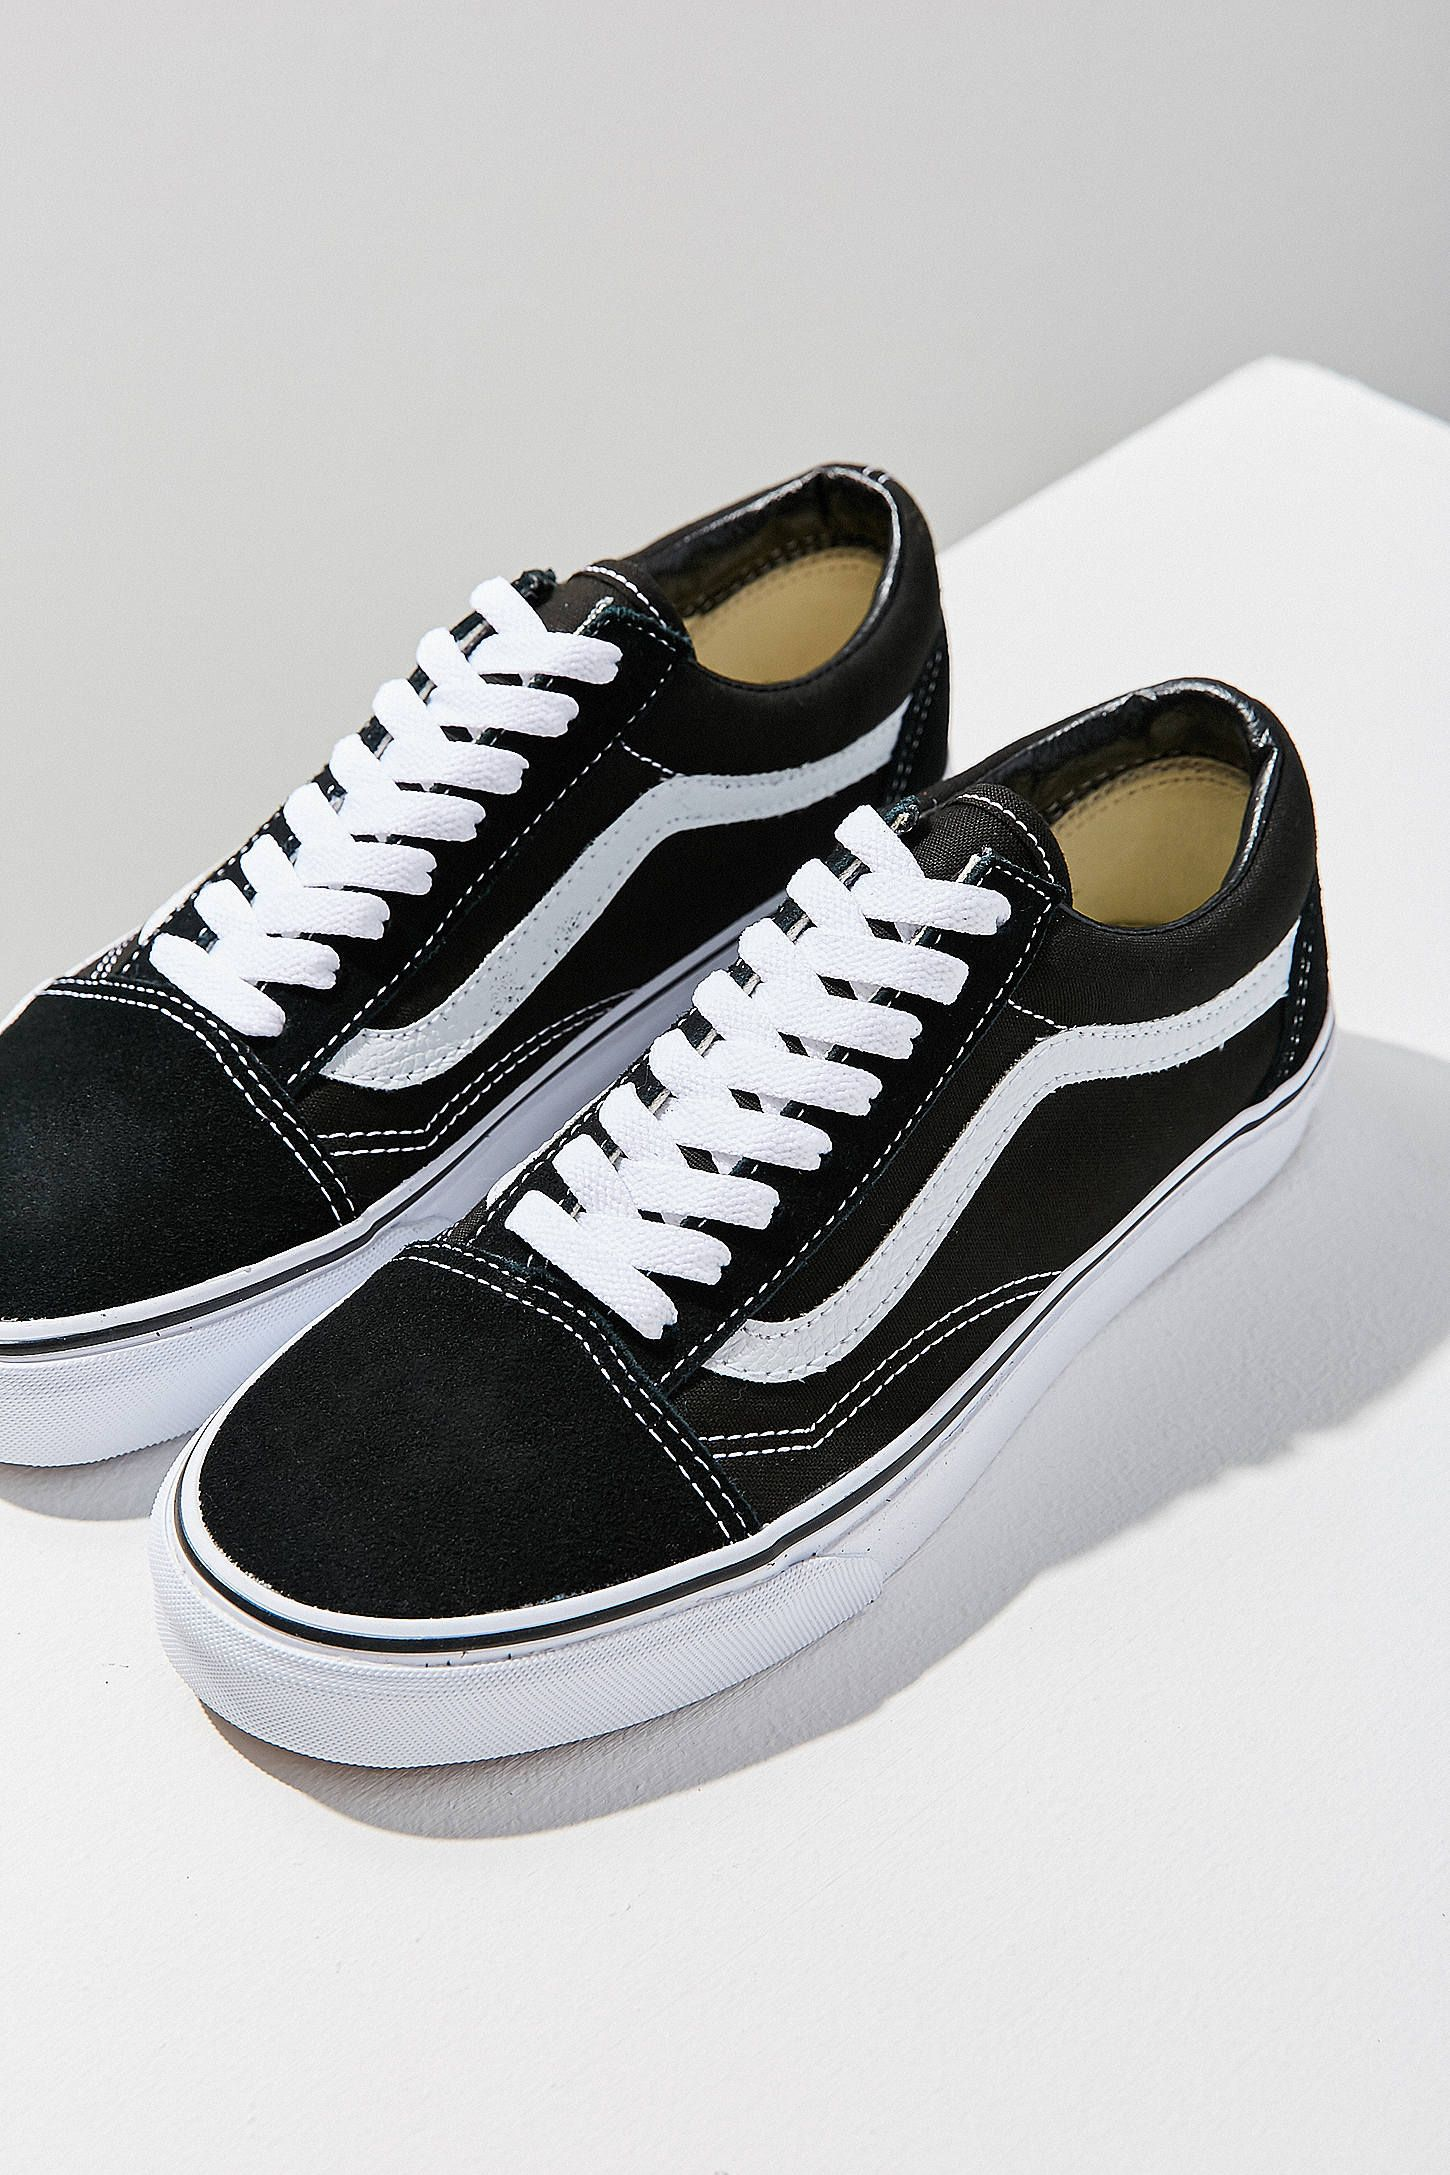 1e24af93d7 Shop Vans Classic Old Skool Sneaker at Urban Outfitters today. We carry all  the latest styles